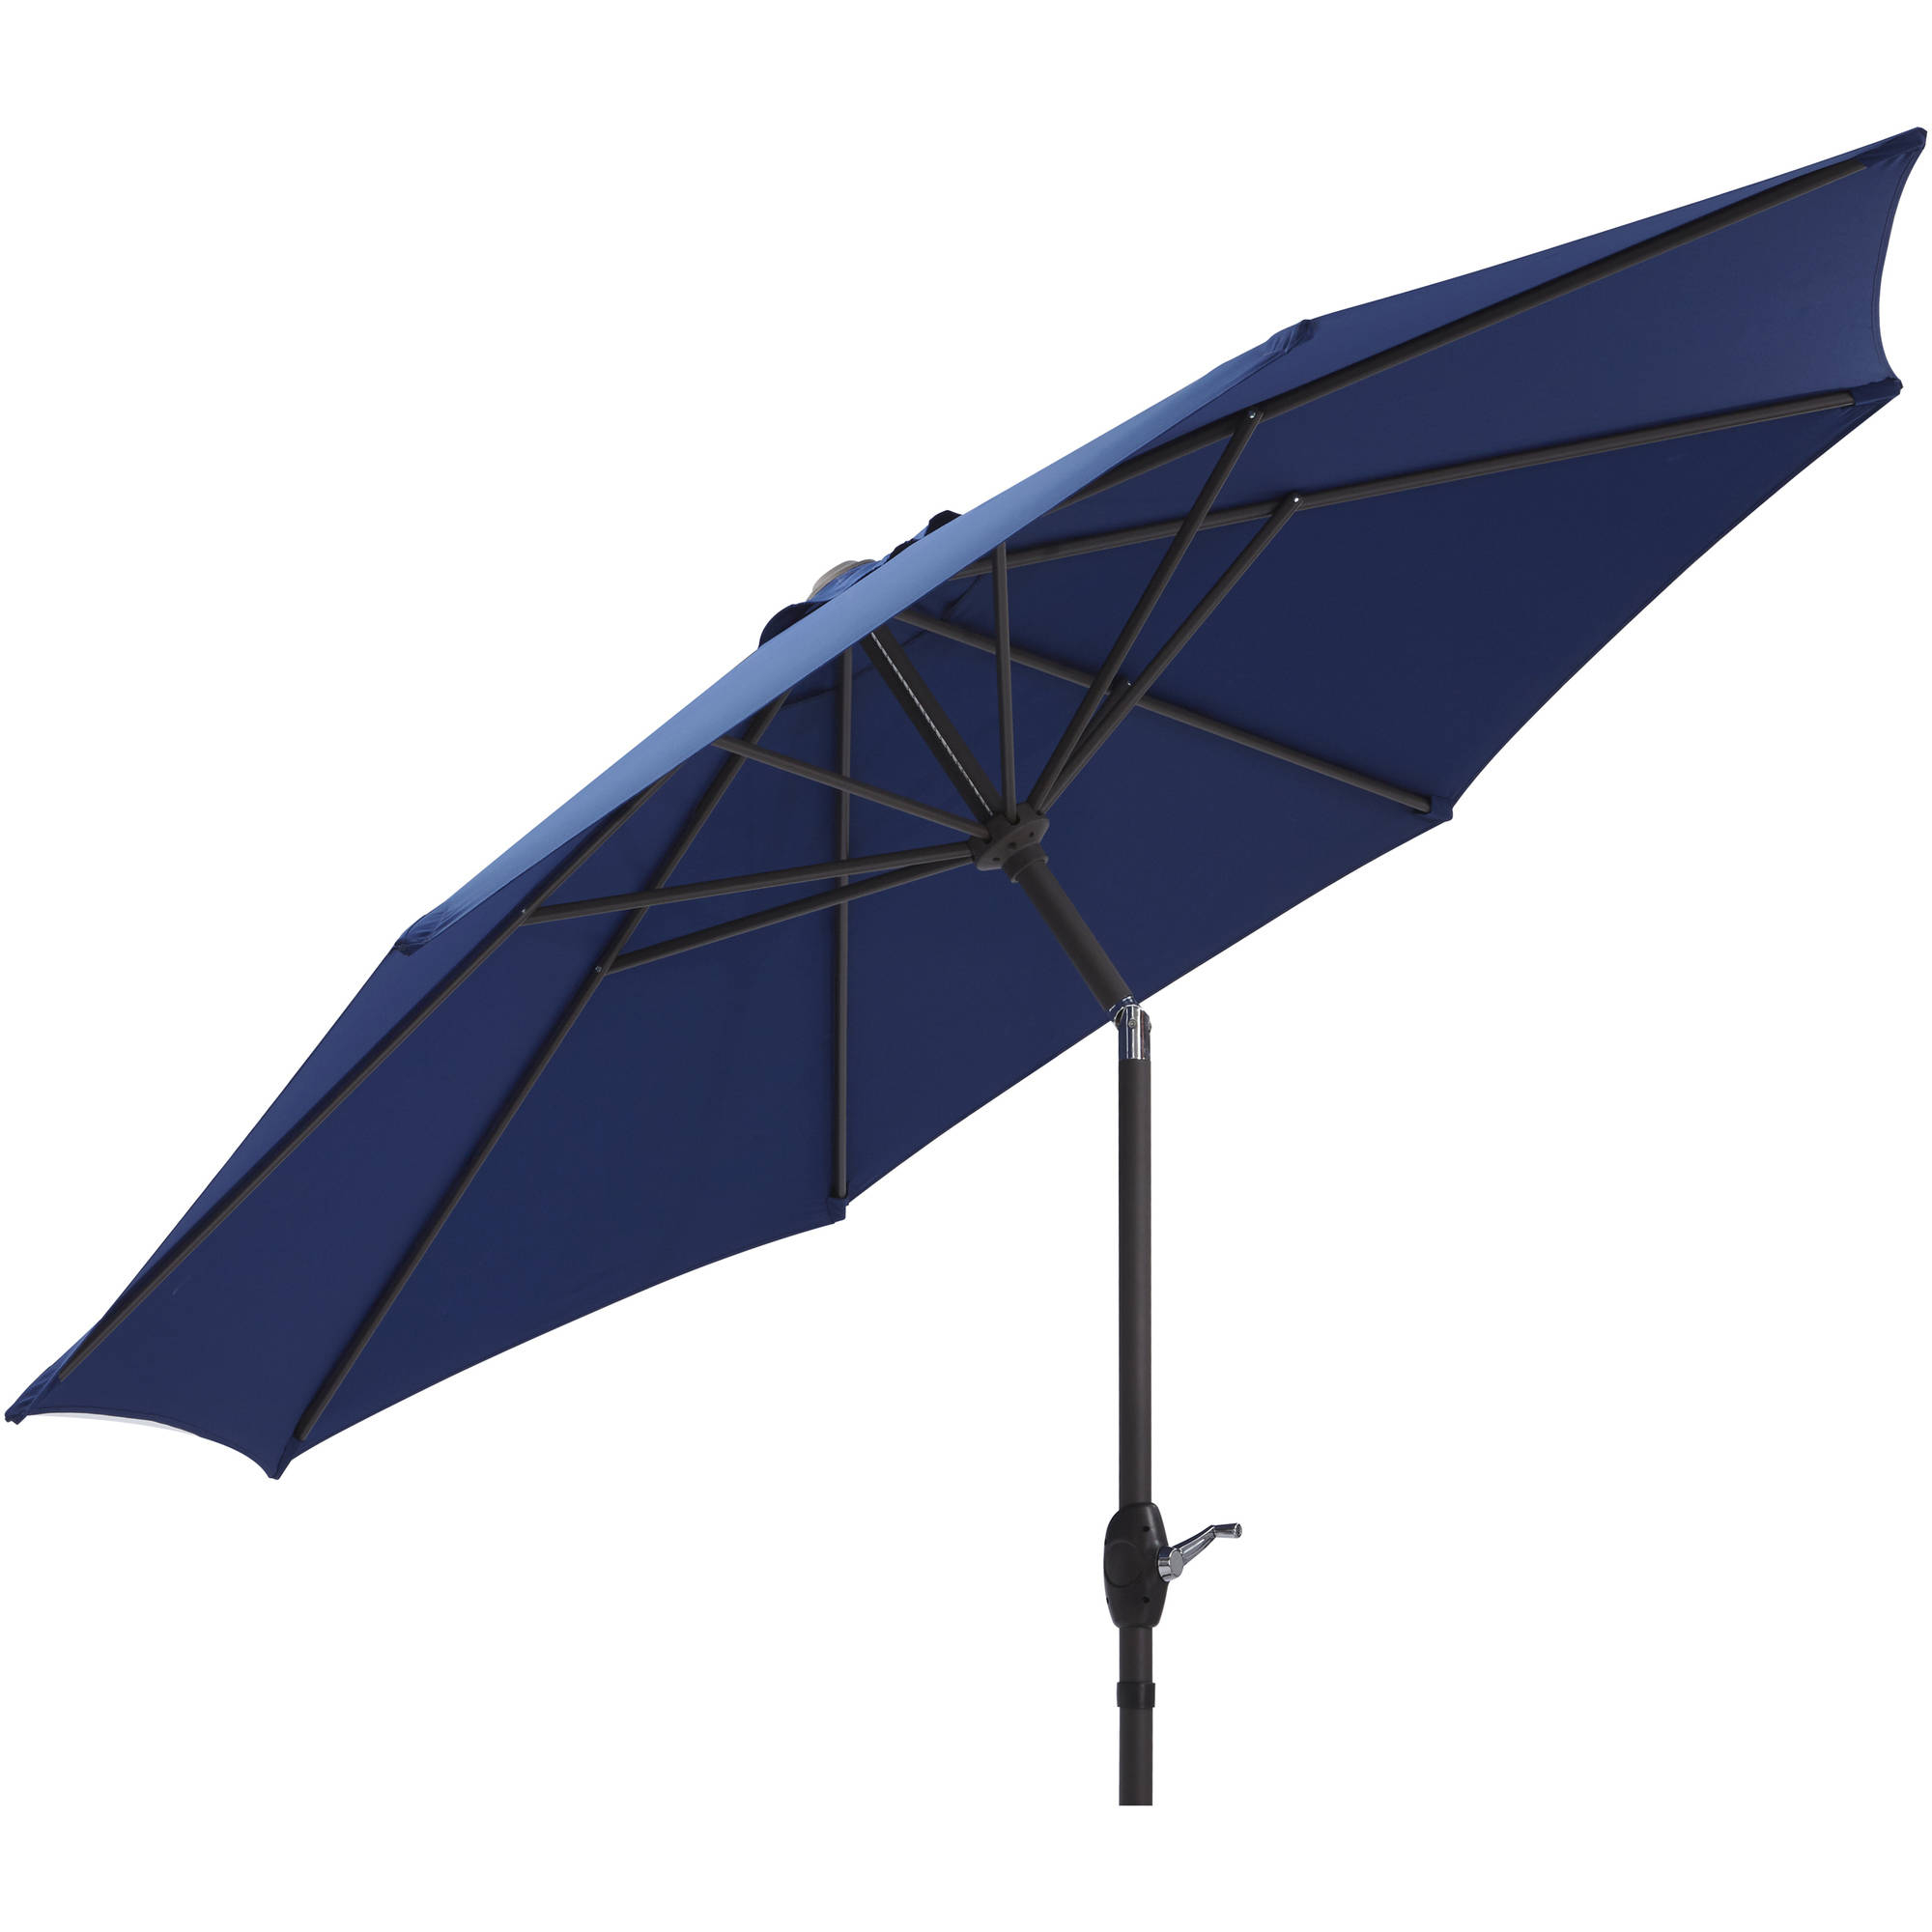 Mainstays 9' Market Umbrella, Navy Blue With Brown Frame For Best And Newest New Haven Market Umbrellas (View 15 of 20)